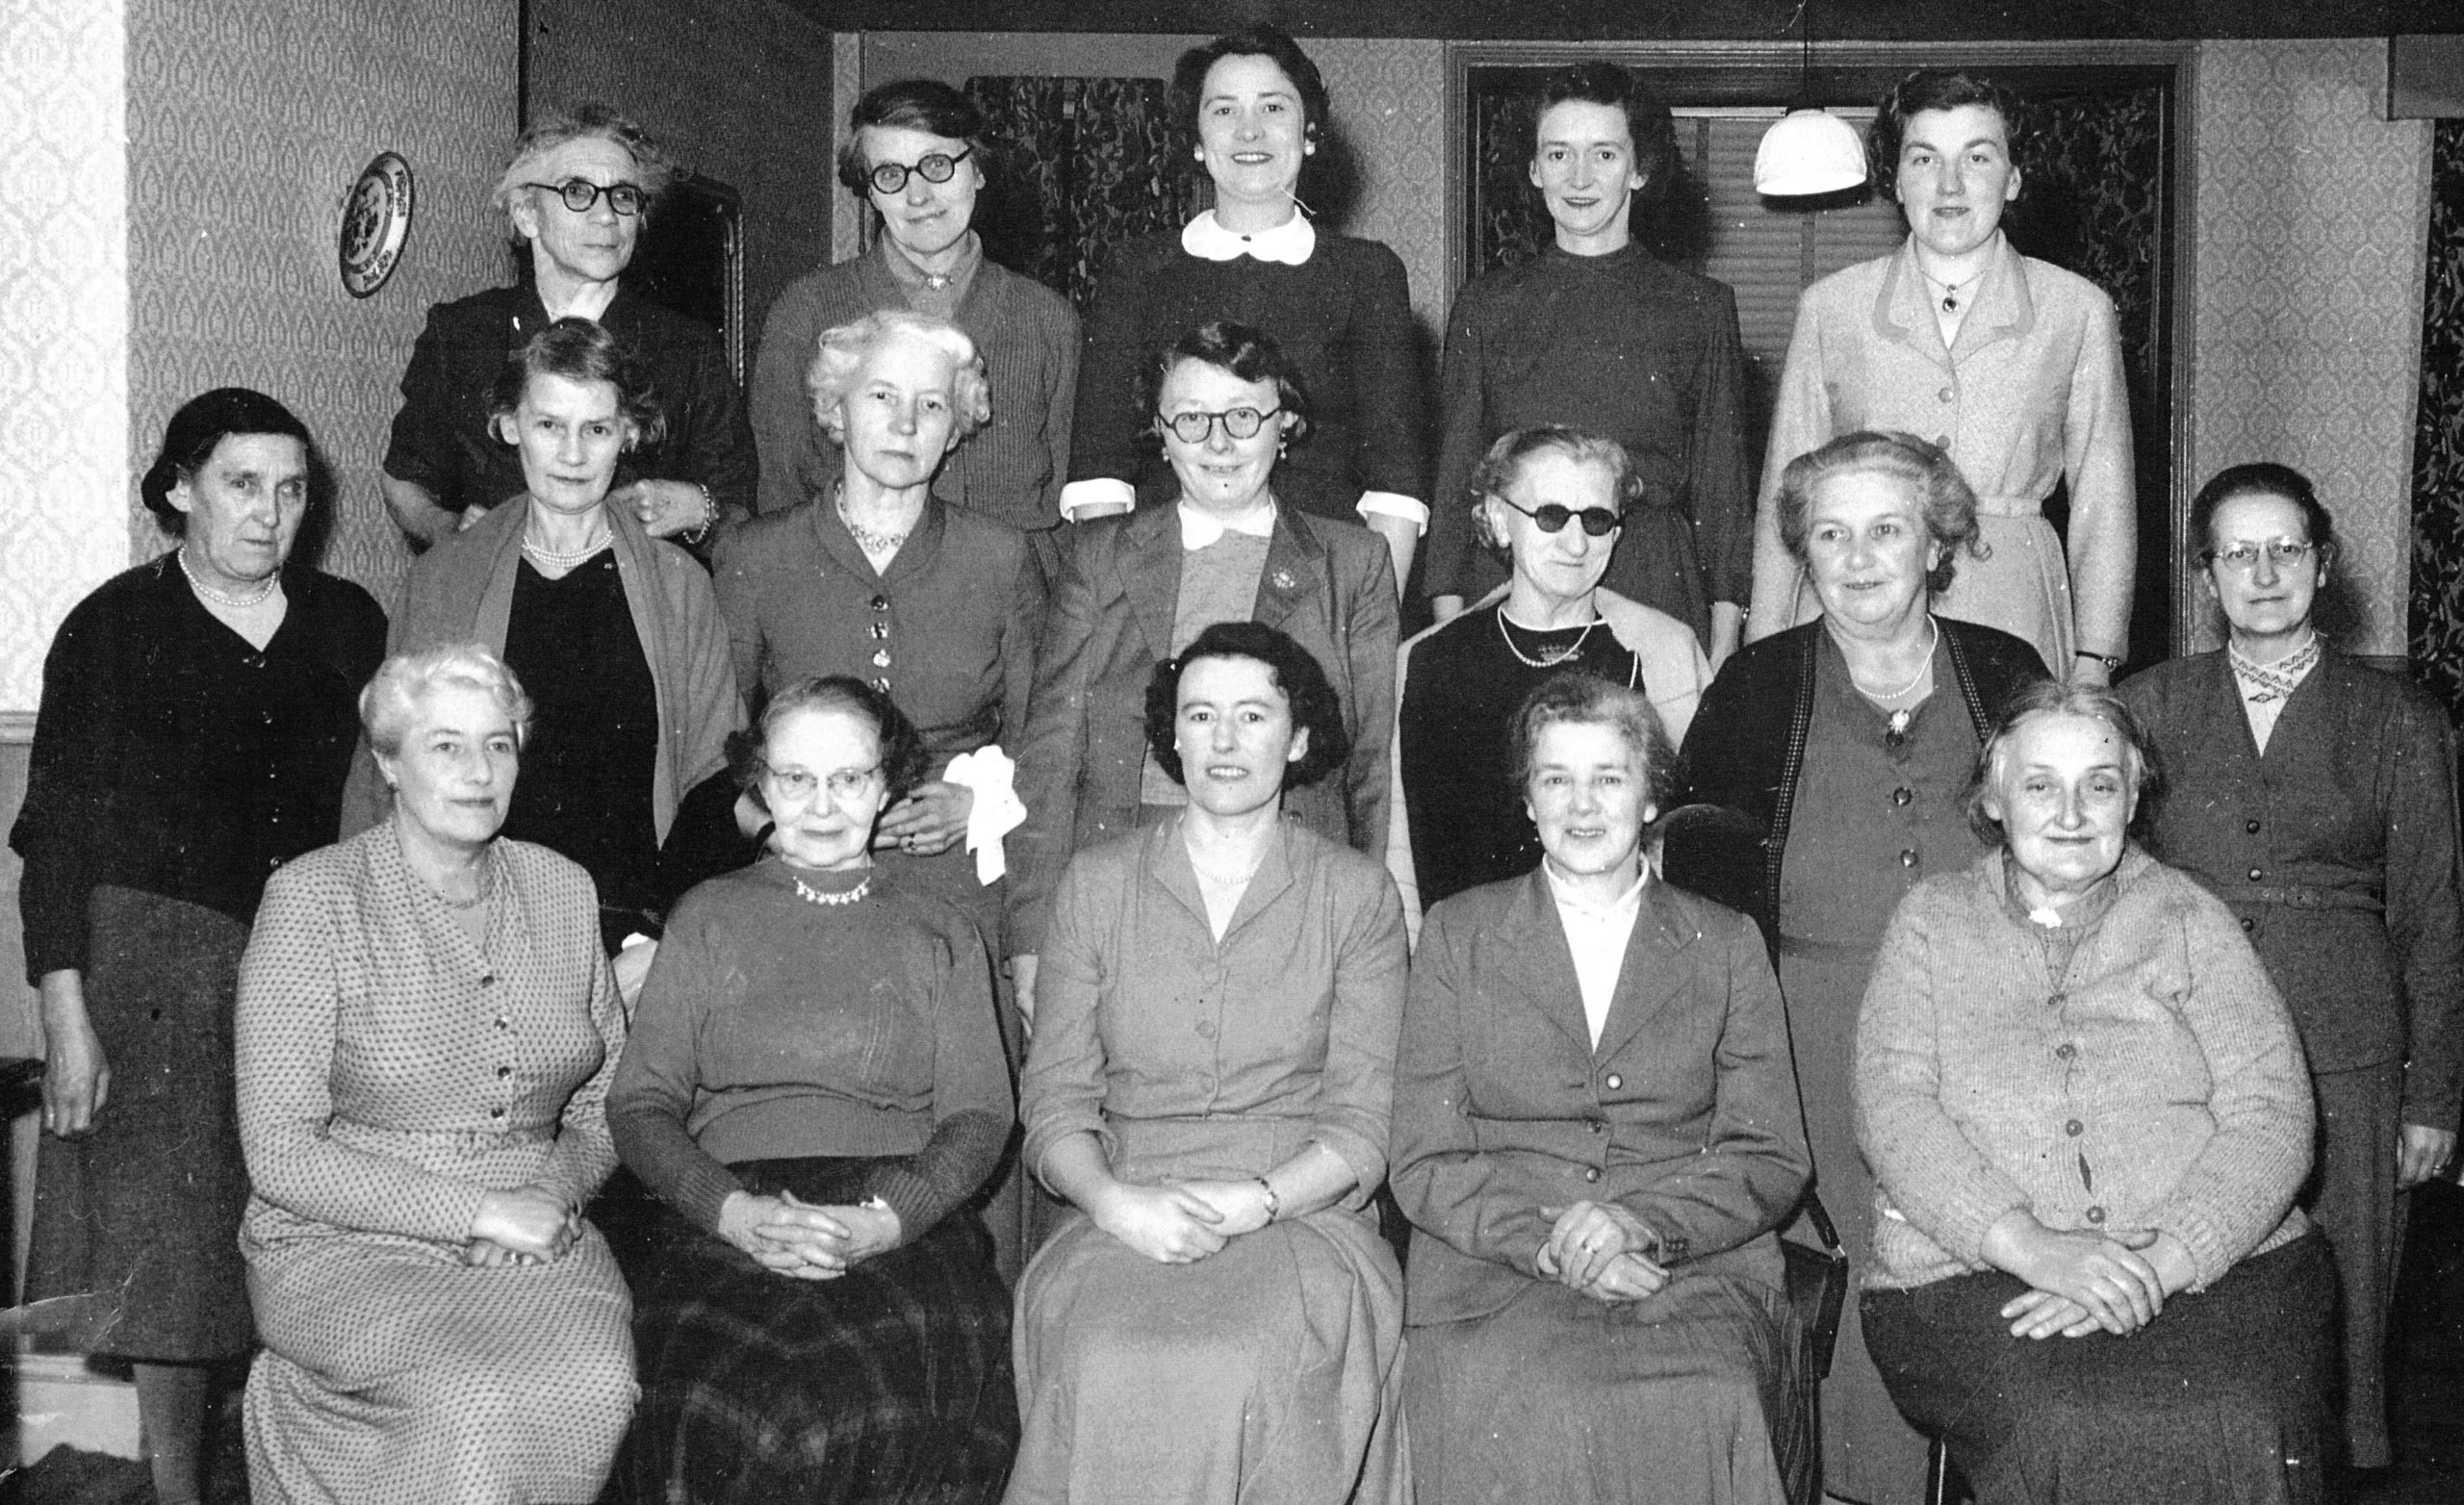 Mothers Union1955 started in 1905